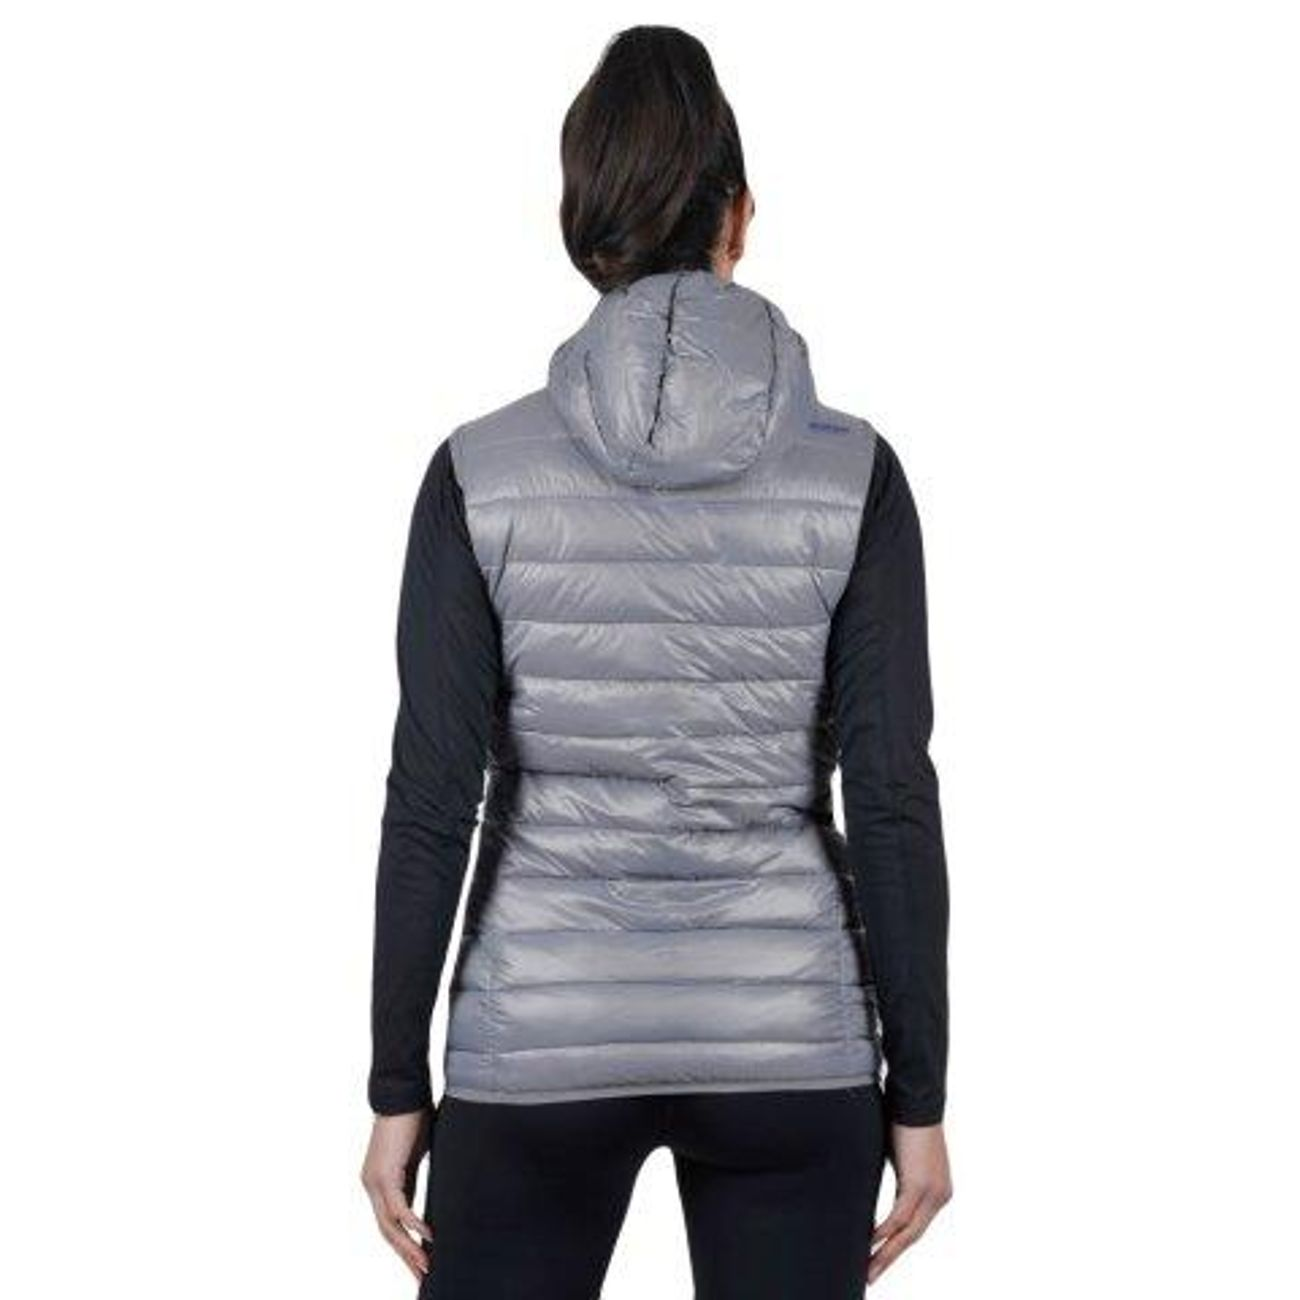 Mode- Lifestyle femme PEAK MOUNTAIN Peak Mountain - Doudoune fine sans manches femme ARCORD-gris